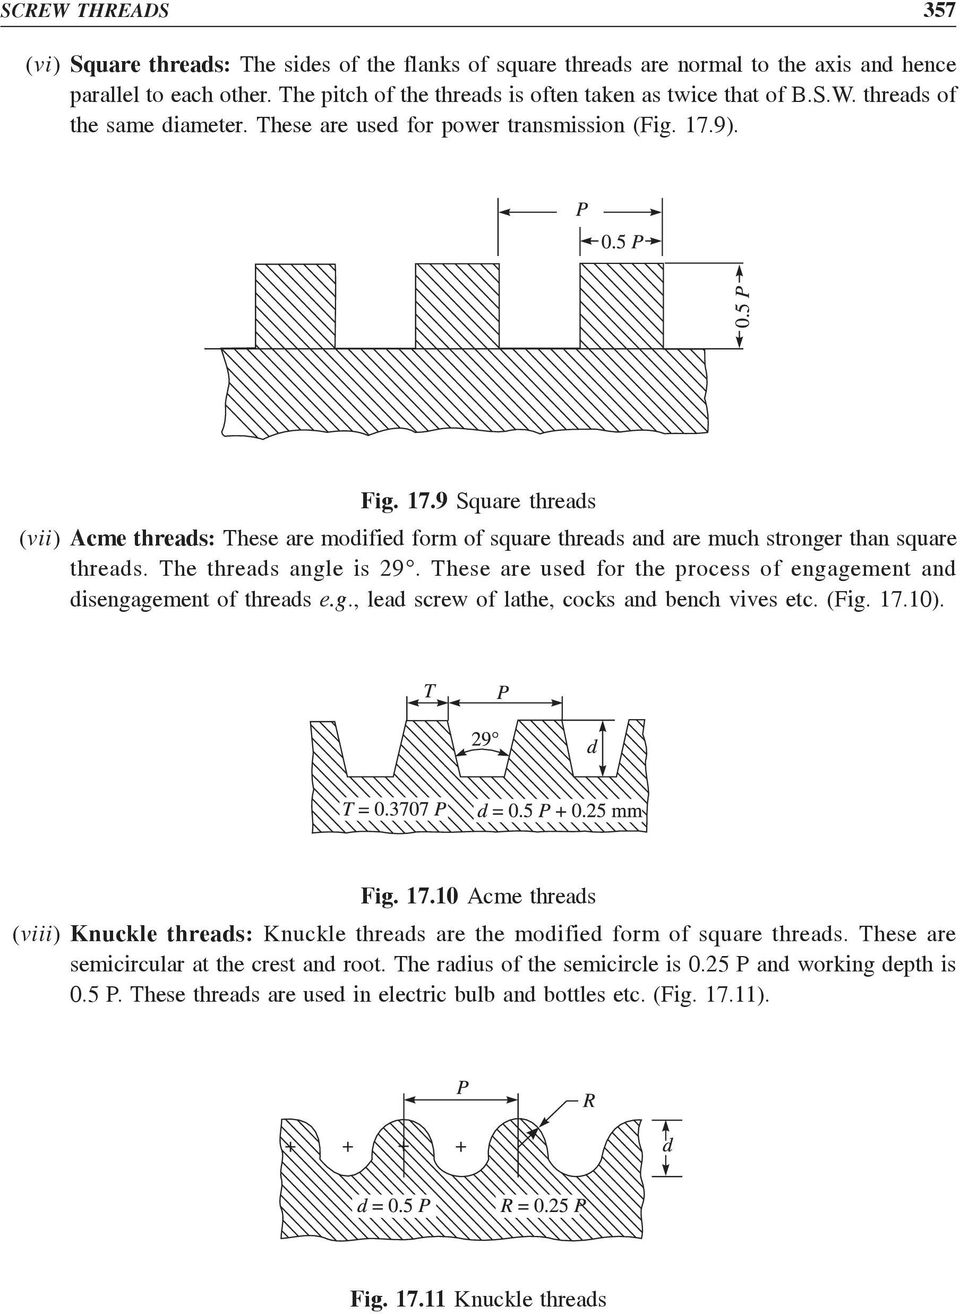 The threads angle is 29. These are used for the process of engagement and disengagement of threads e.g., lead screw of lathe, cocks and bench vives etc. (Fig. 17.